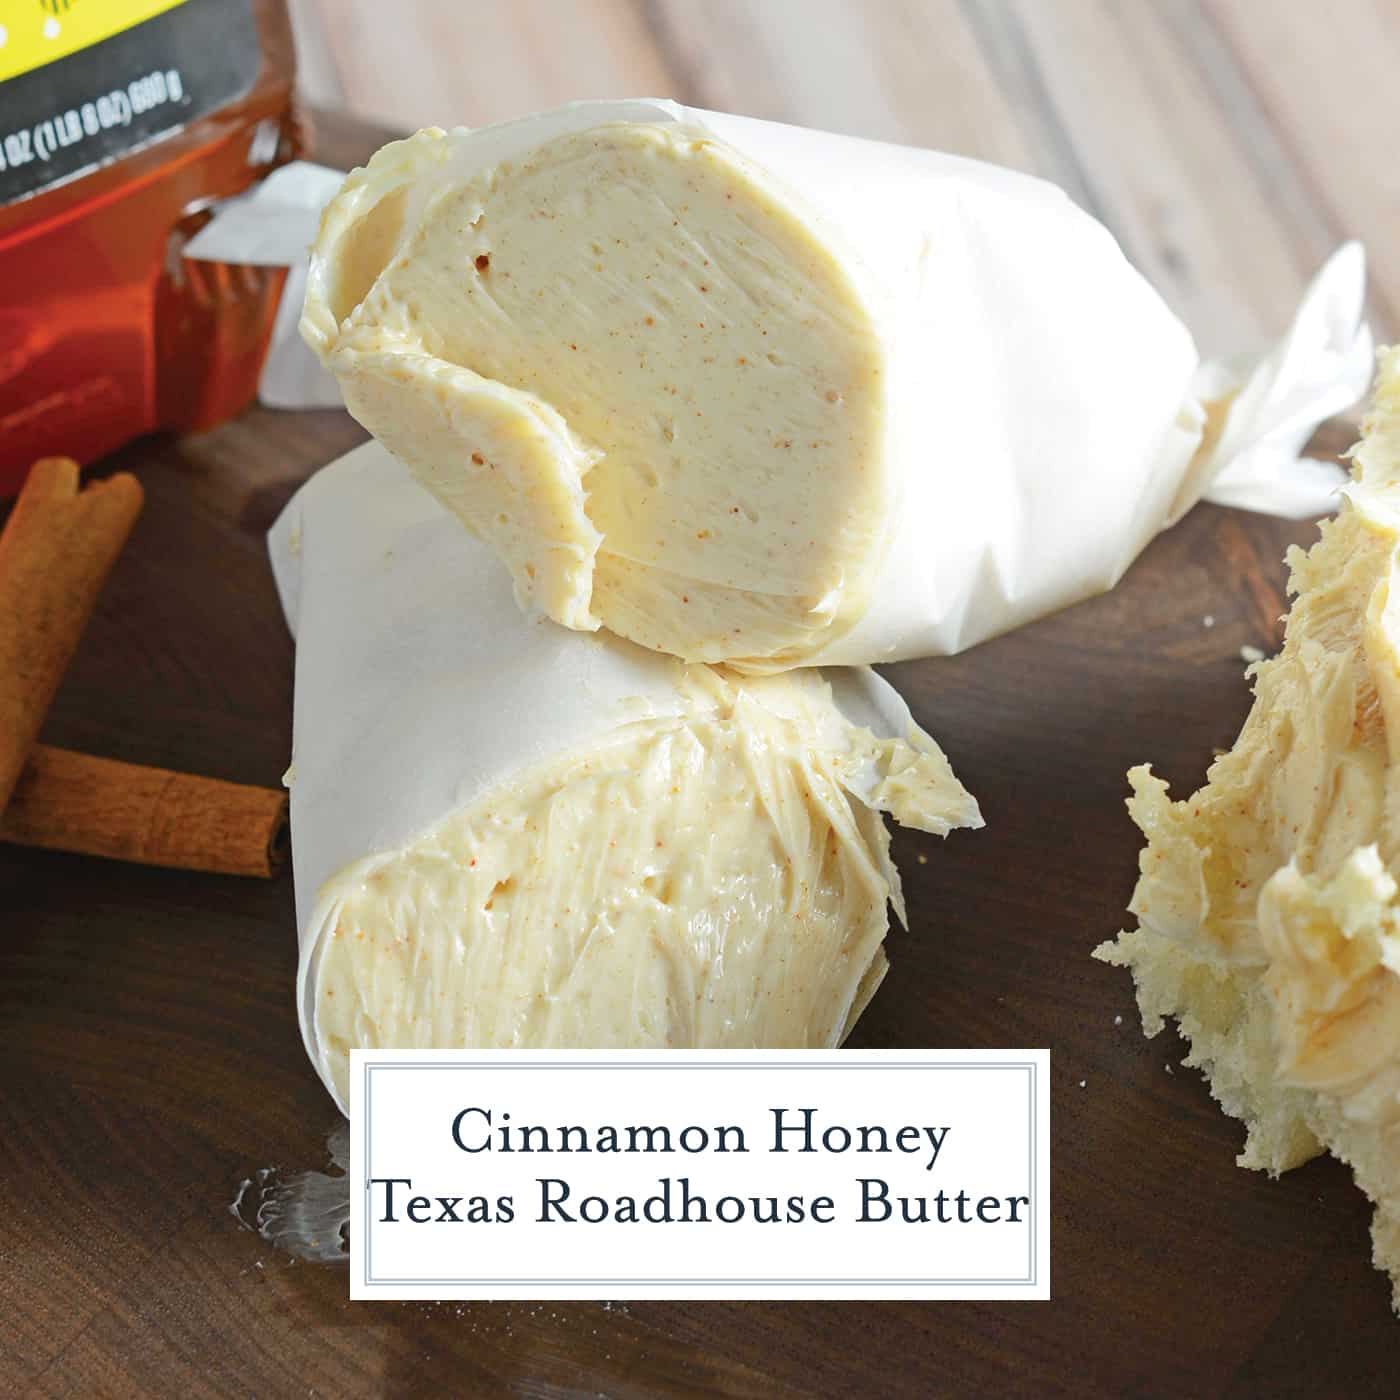 Cinnamon Honey Texas Roadhouse Butter will take your bread to the next level! Cinnamon butter is super easy to make with 2 ingredients and only takes 5 min! #texasroadhousebutterrecipe #texasroadhousecinnamonbutter #honeybutter www.savoryexperiments.com